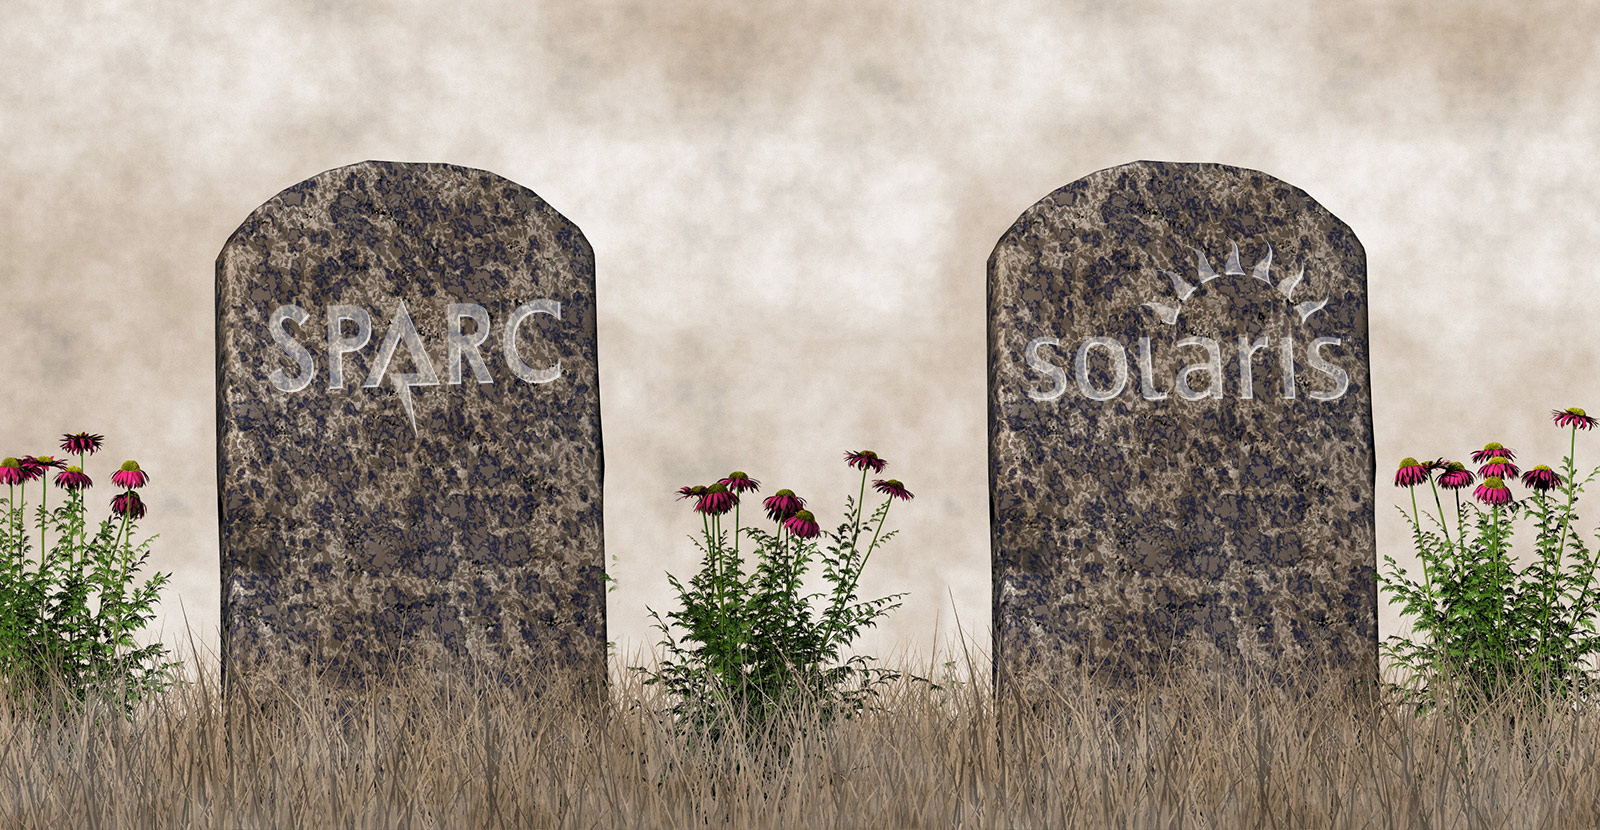 R.I.P. SPARC and Solaris.